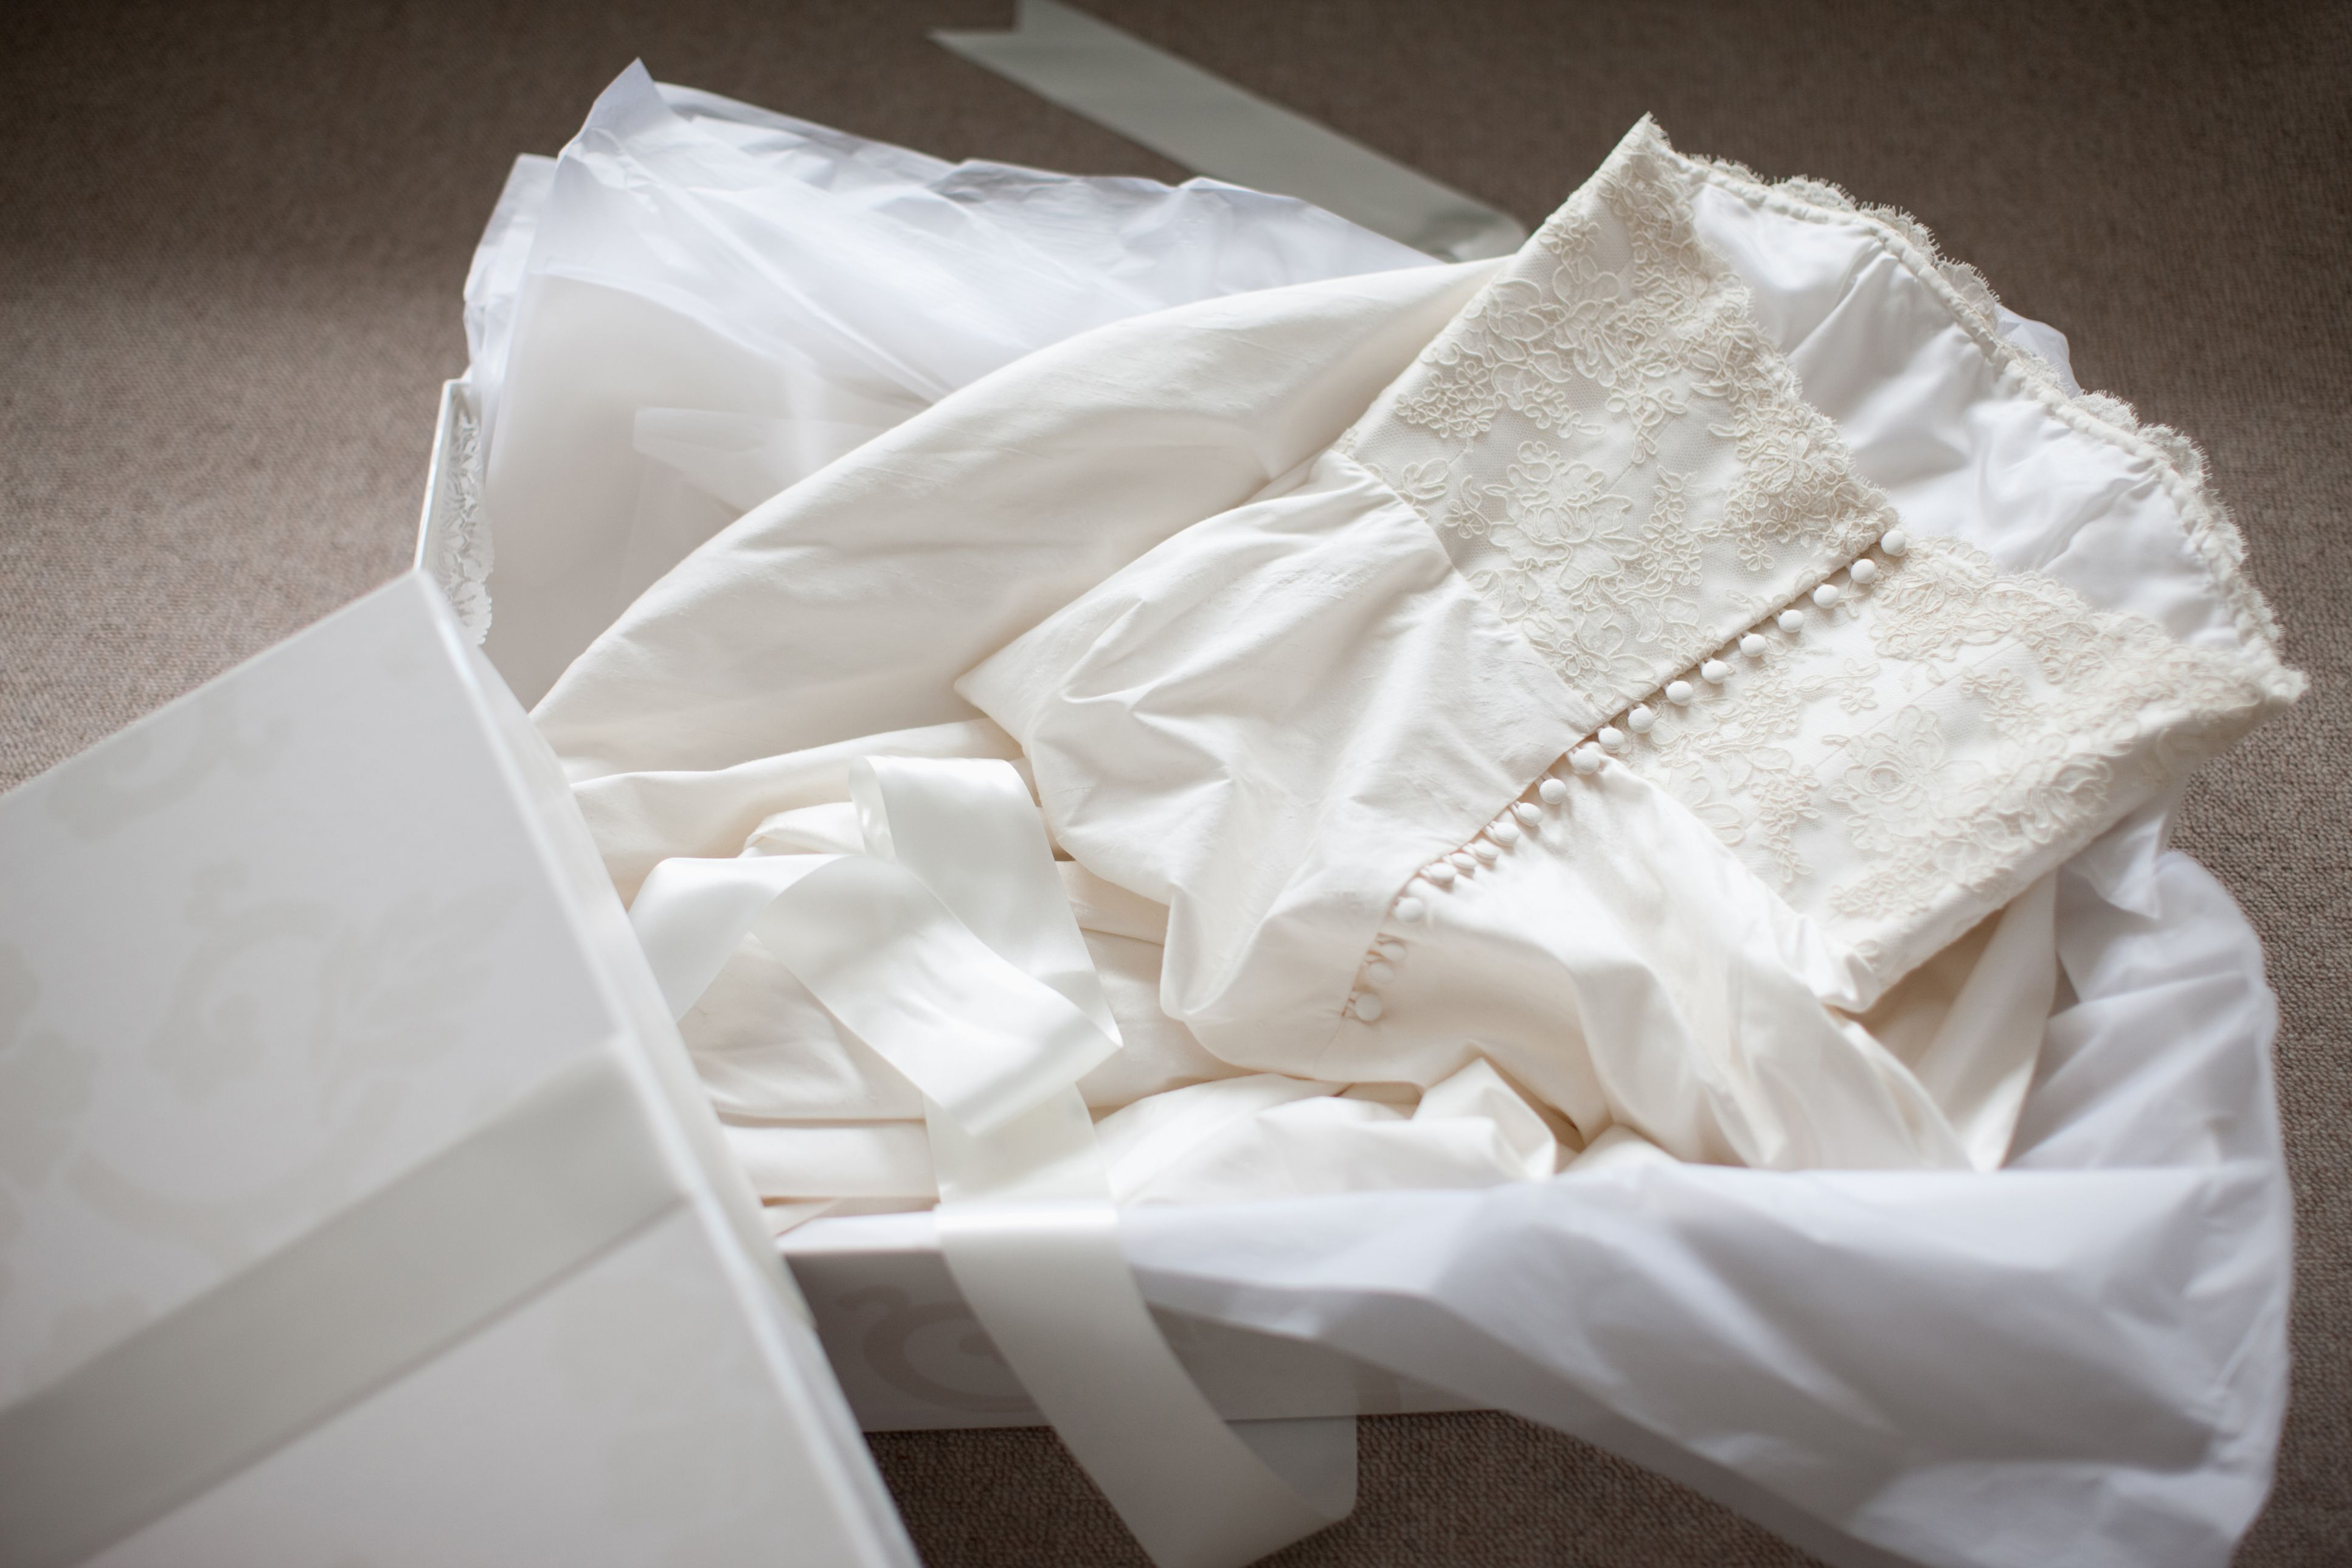 How To Clean, Preserve And Store A Wedding Gown